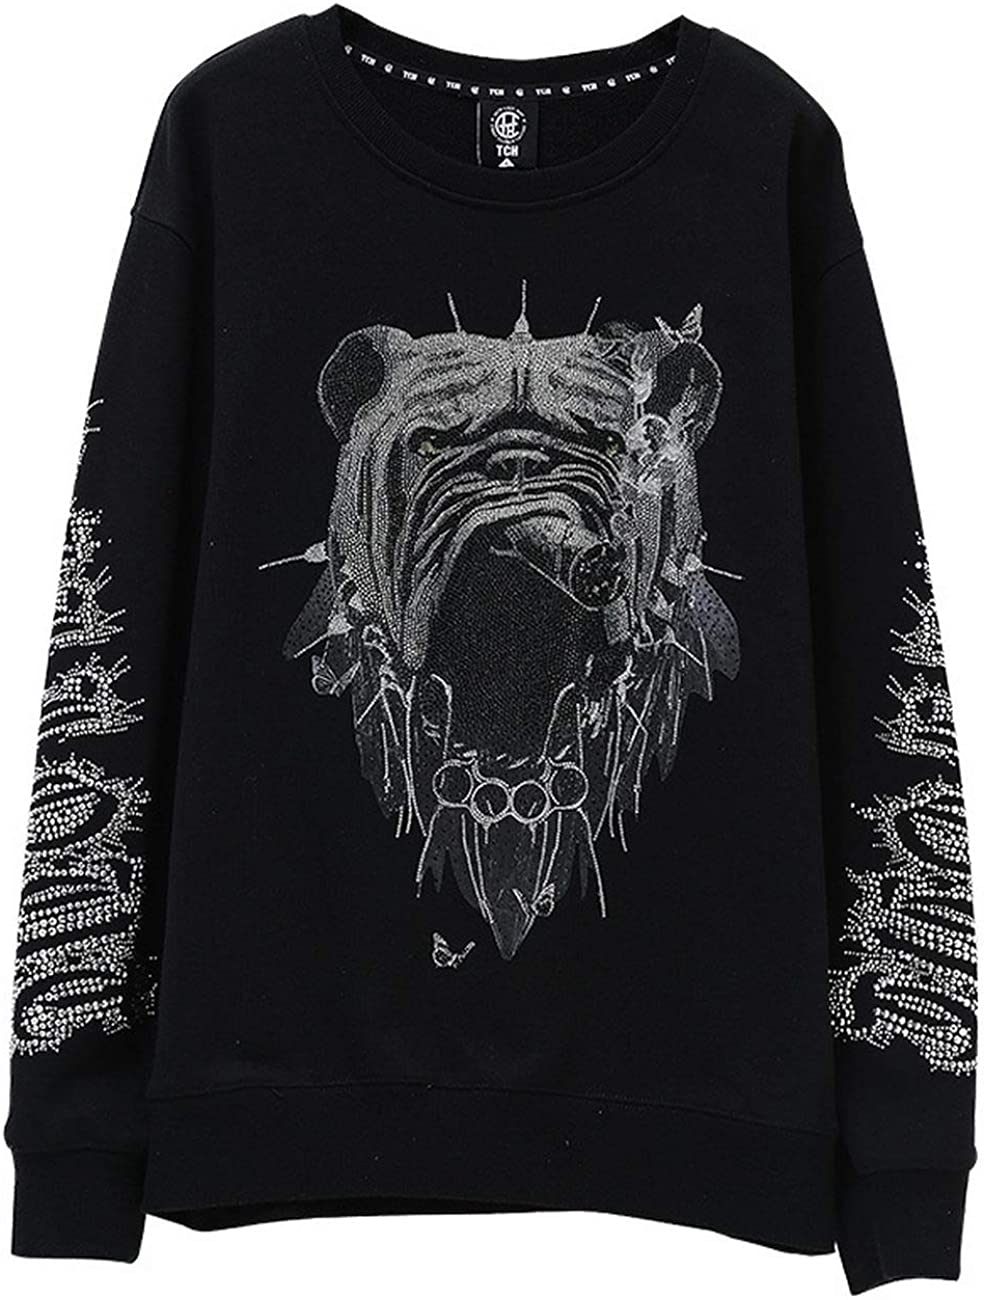 Light Luxury Tide Brand Big Dog growled C hot Beads Casual Sweater Men and Women T201116013